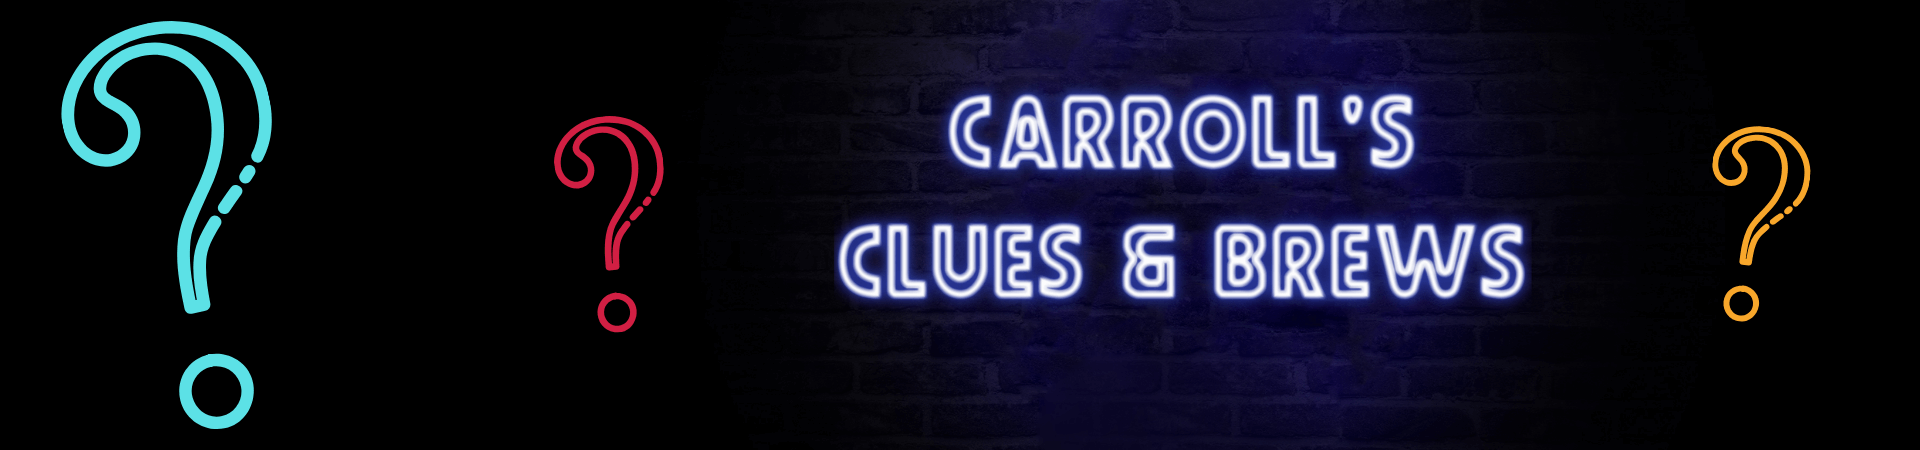 "The words ""Carroll's Clues and Brews"" written in neon lights appears against a dark blue brick background. Different colored question marks surround it."